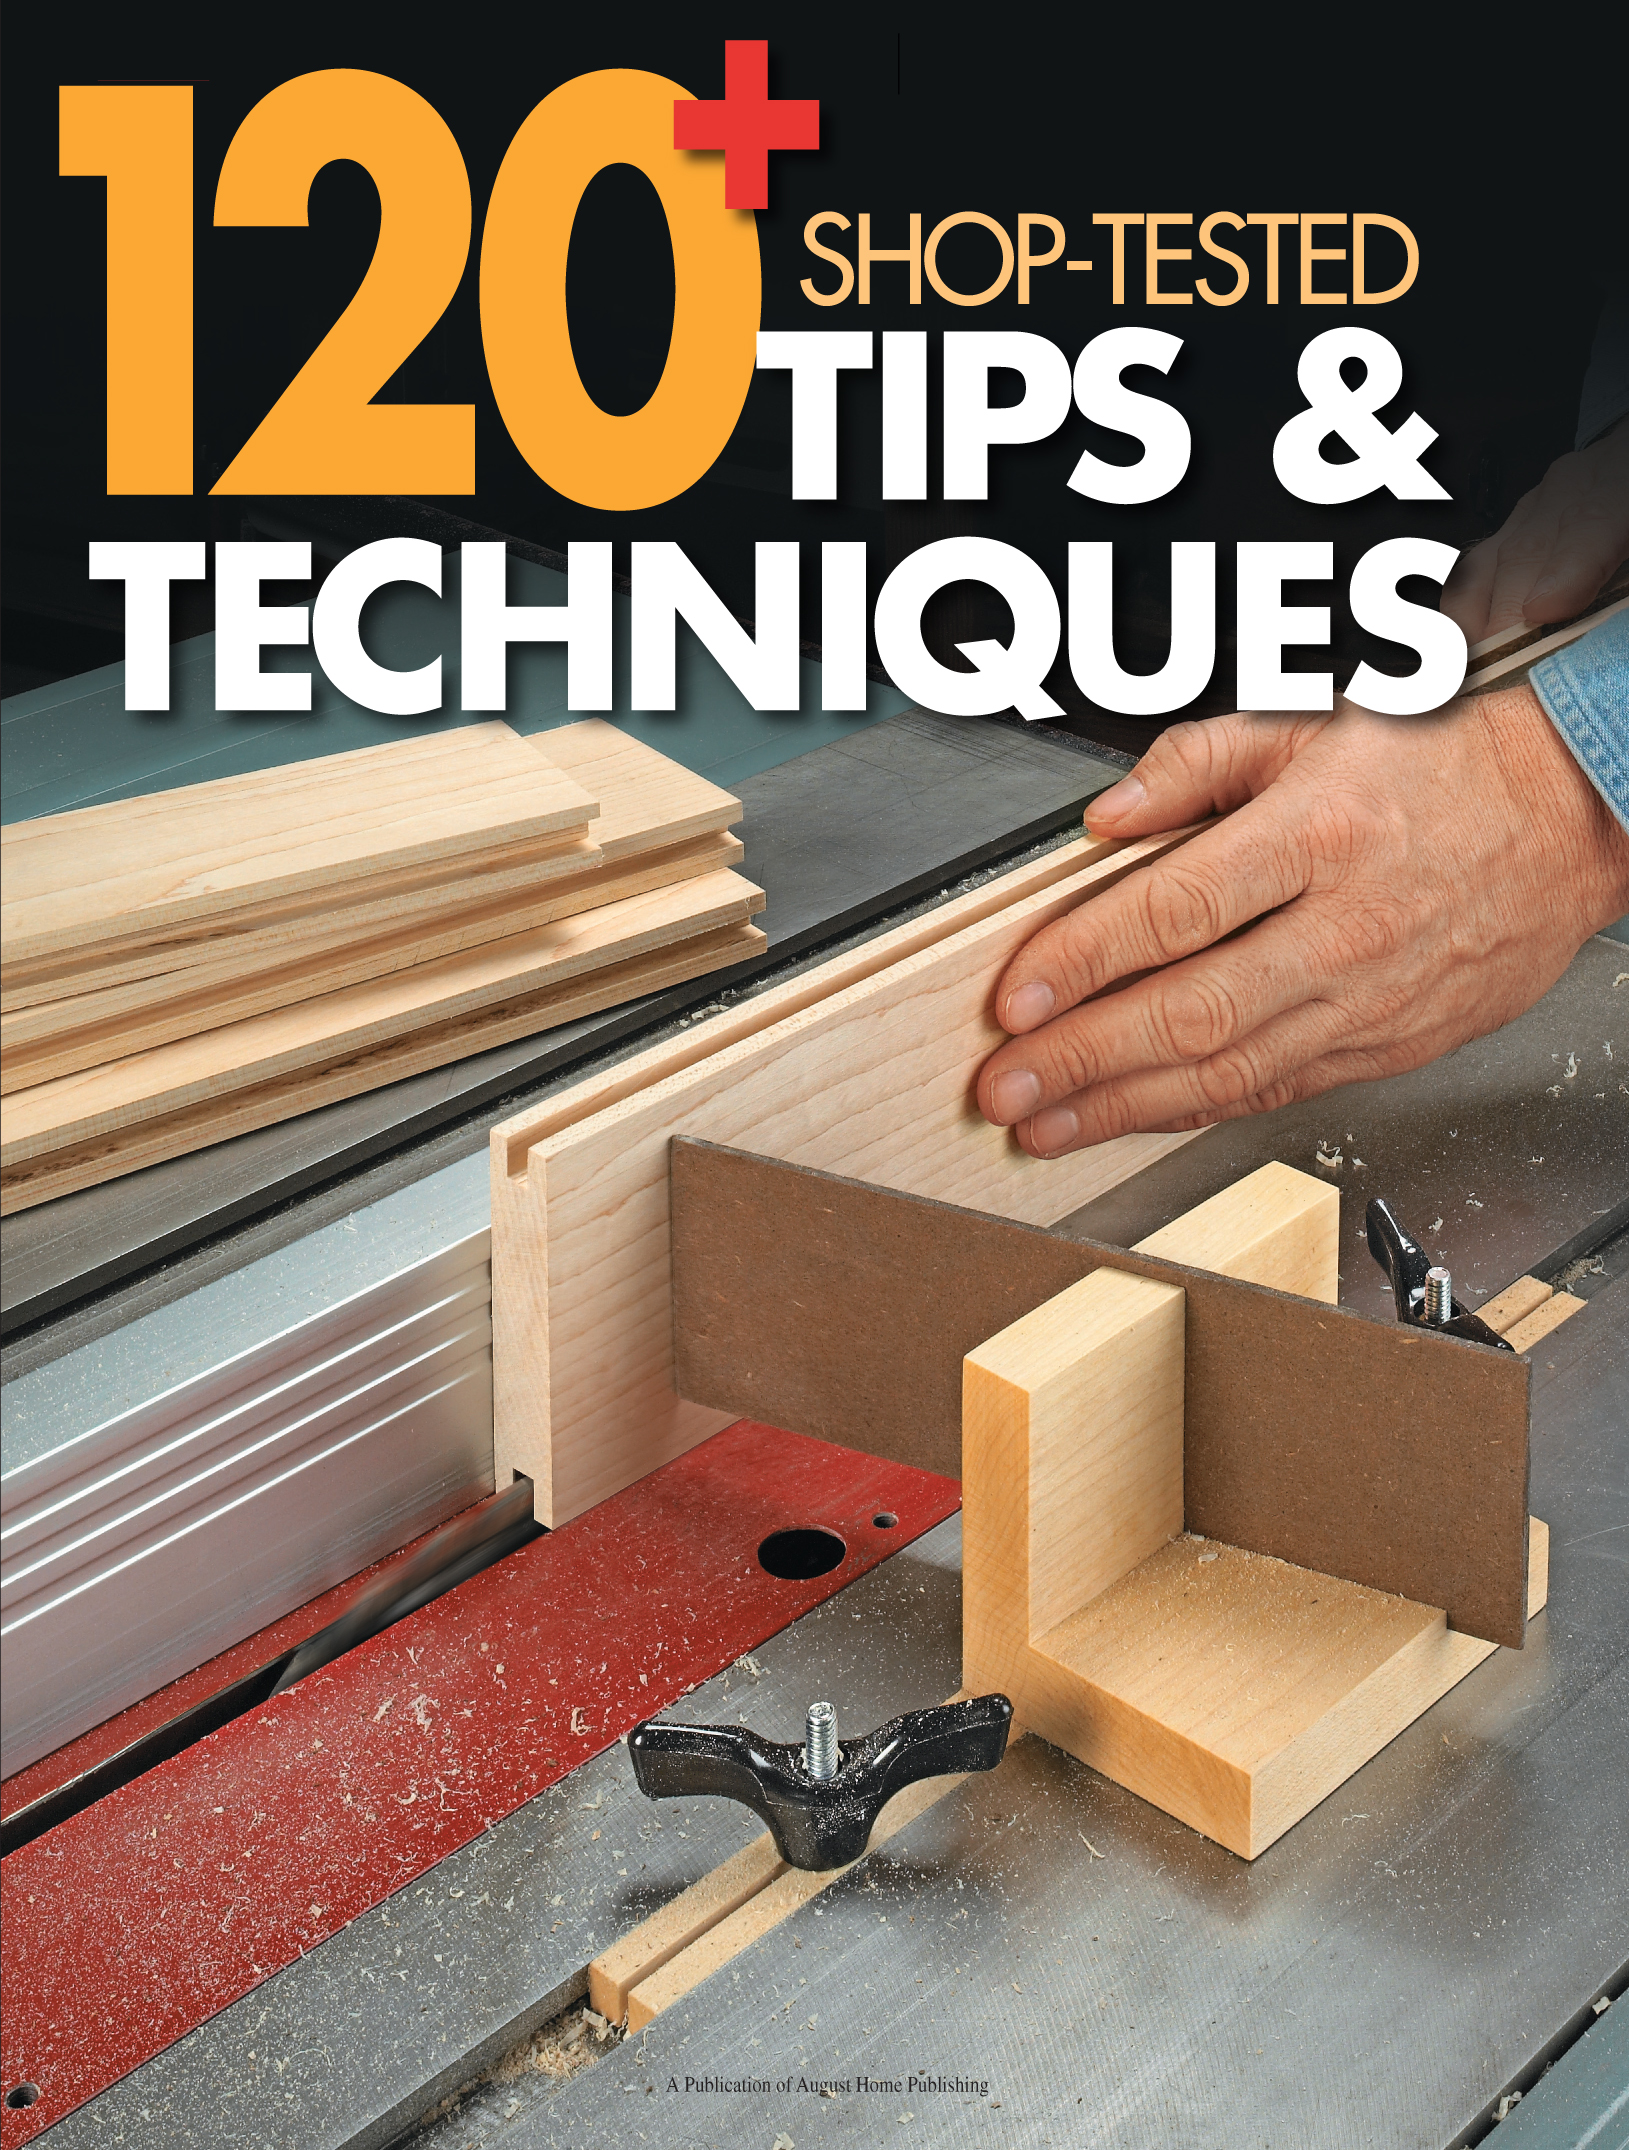 120+ Shop-Tested Tips & Techniques Cover